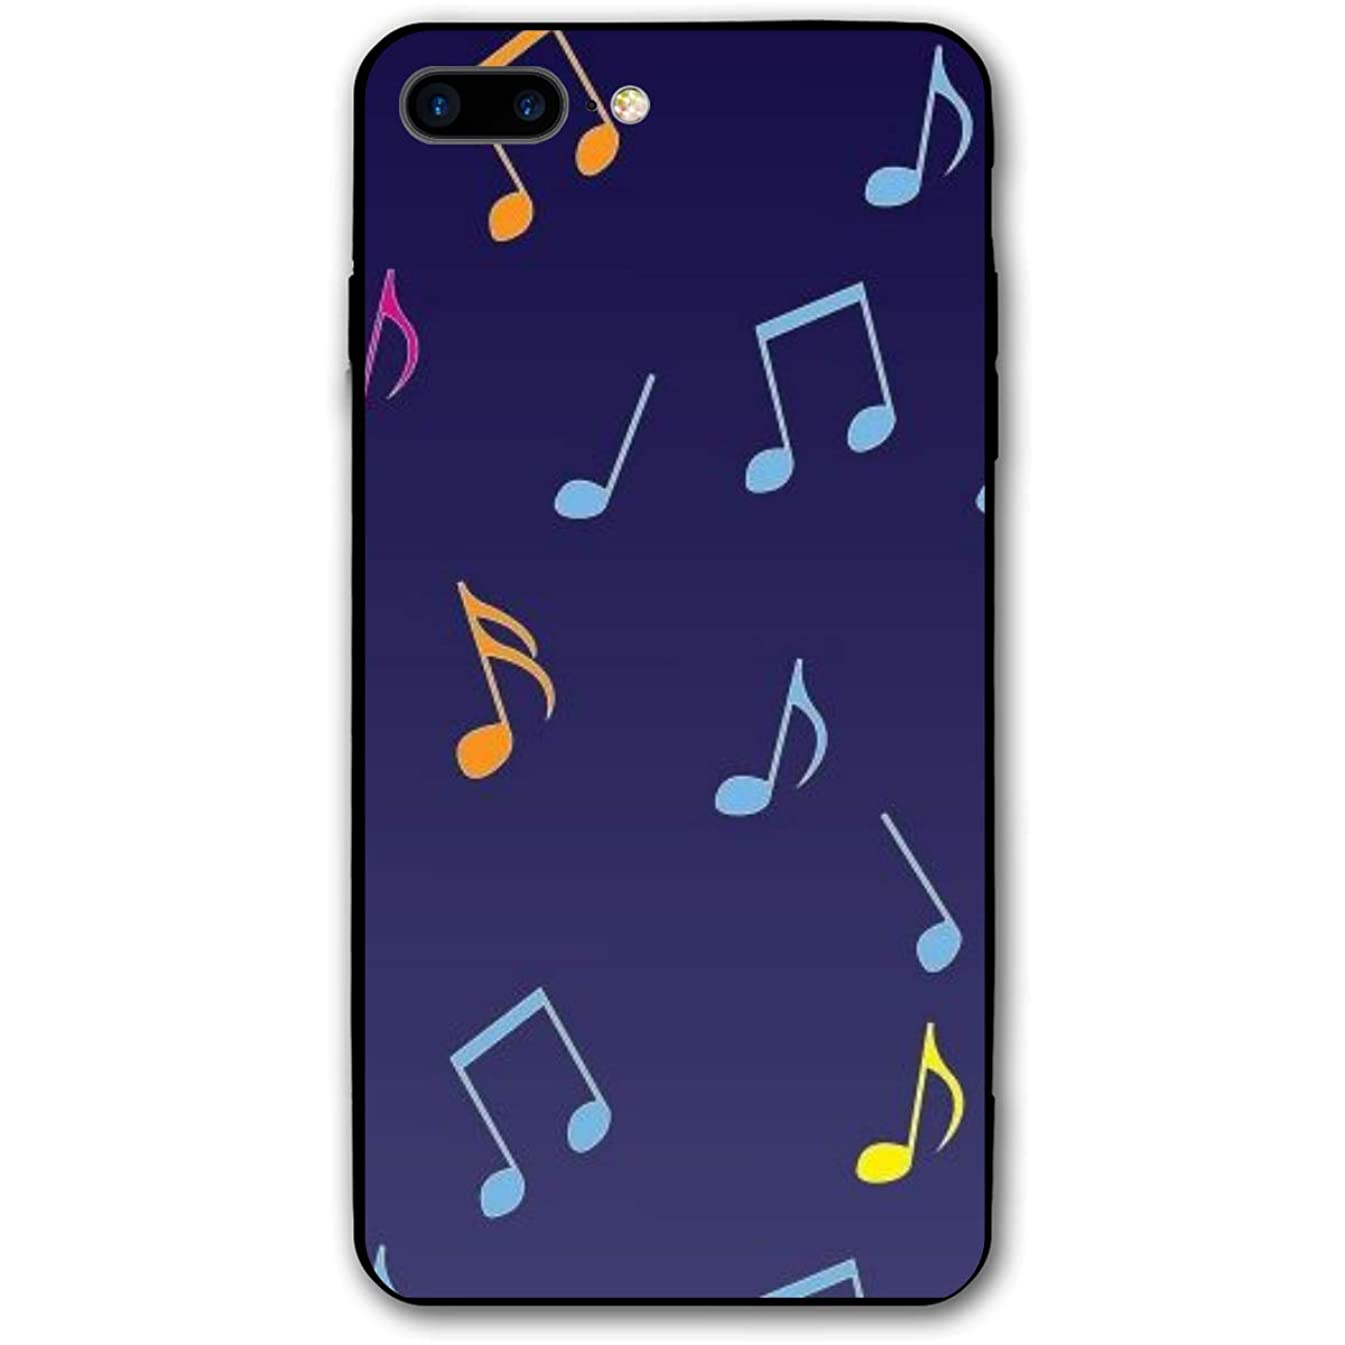 Adetad 5.5Inch iPhone 8 Plus Case Music Notes Pattern Anti-Scratch Shock Proof Hard PC Protective Case Cover